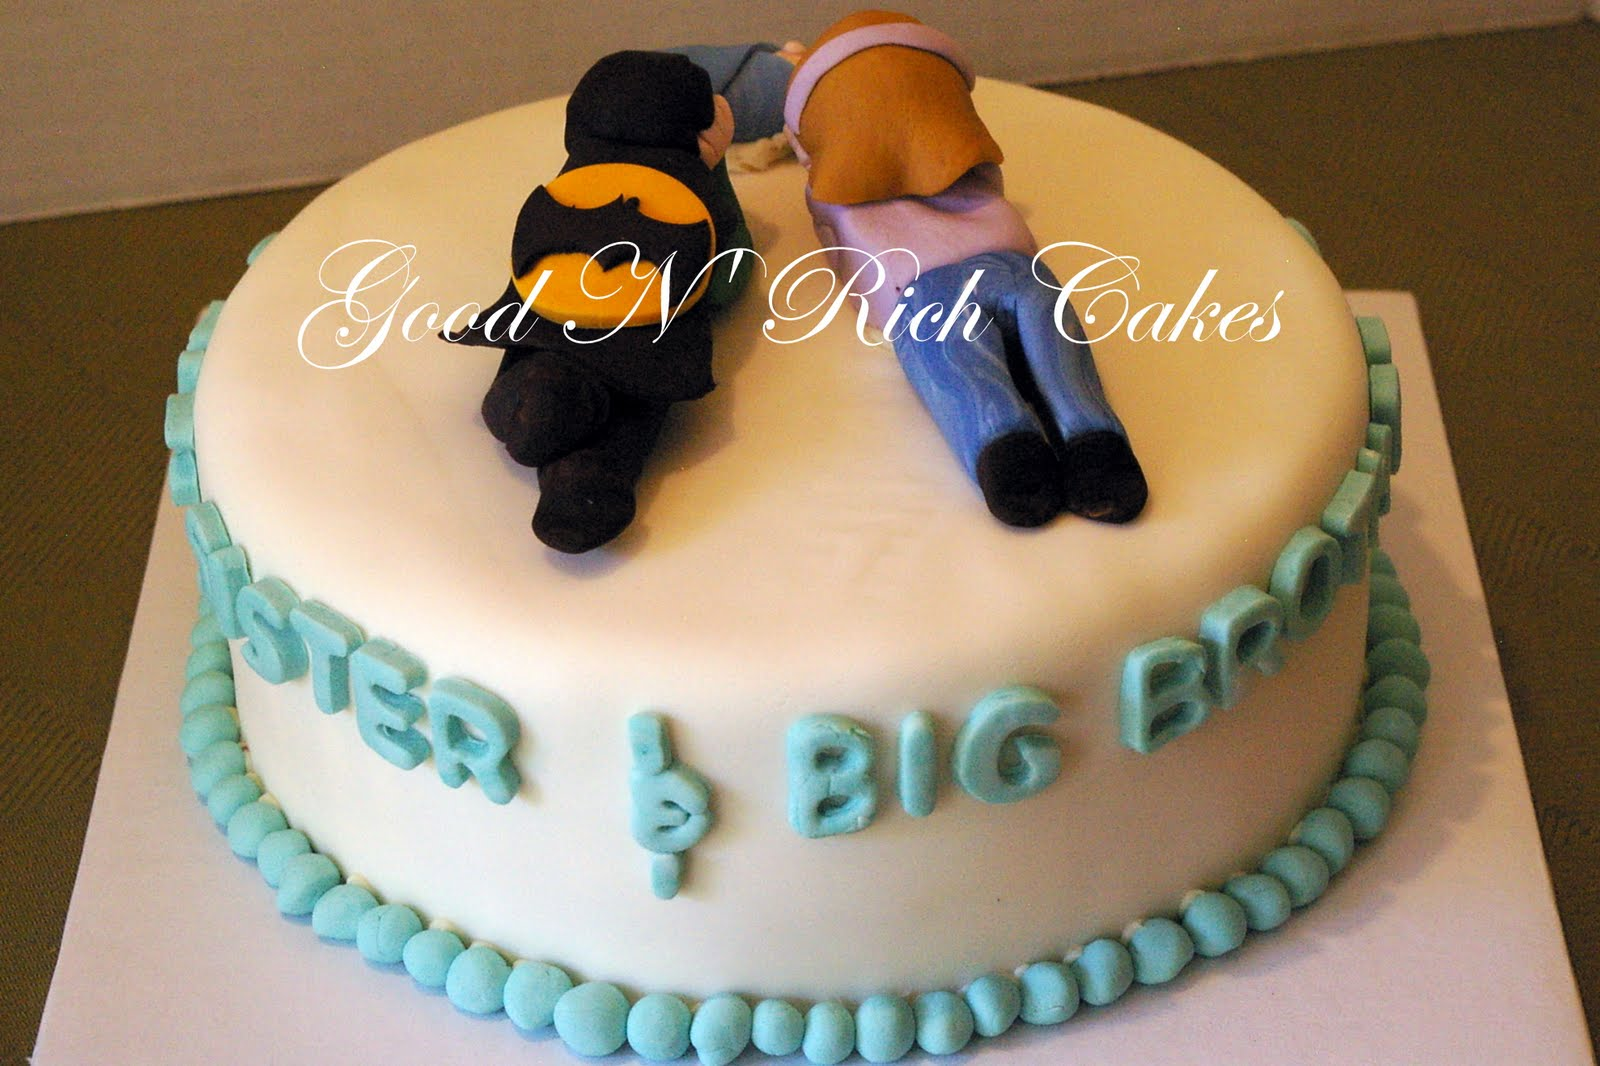 Birthday Cake Images For Big Brother : Good N  Rich Cakes Blog: Congratulations Big Sister and ...